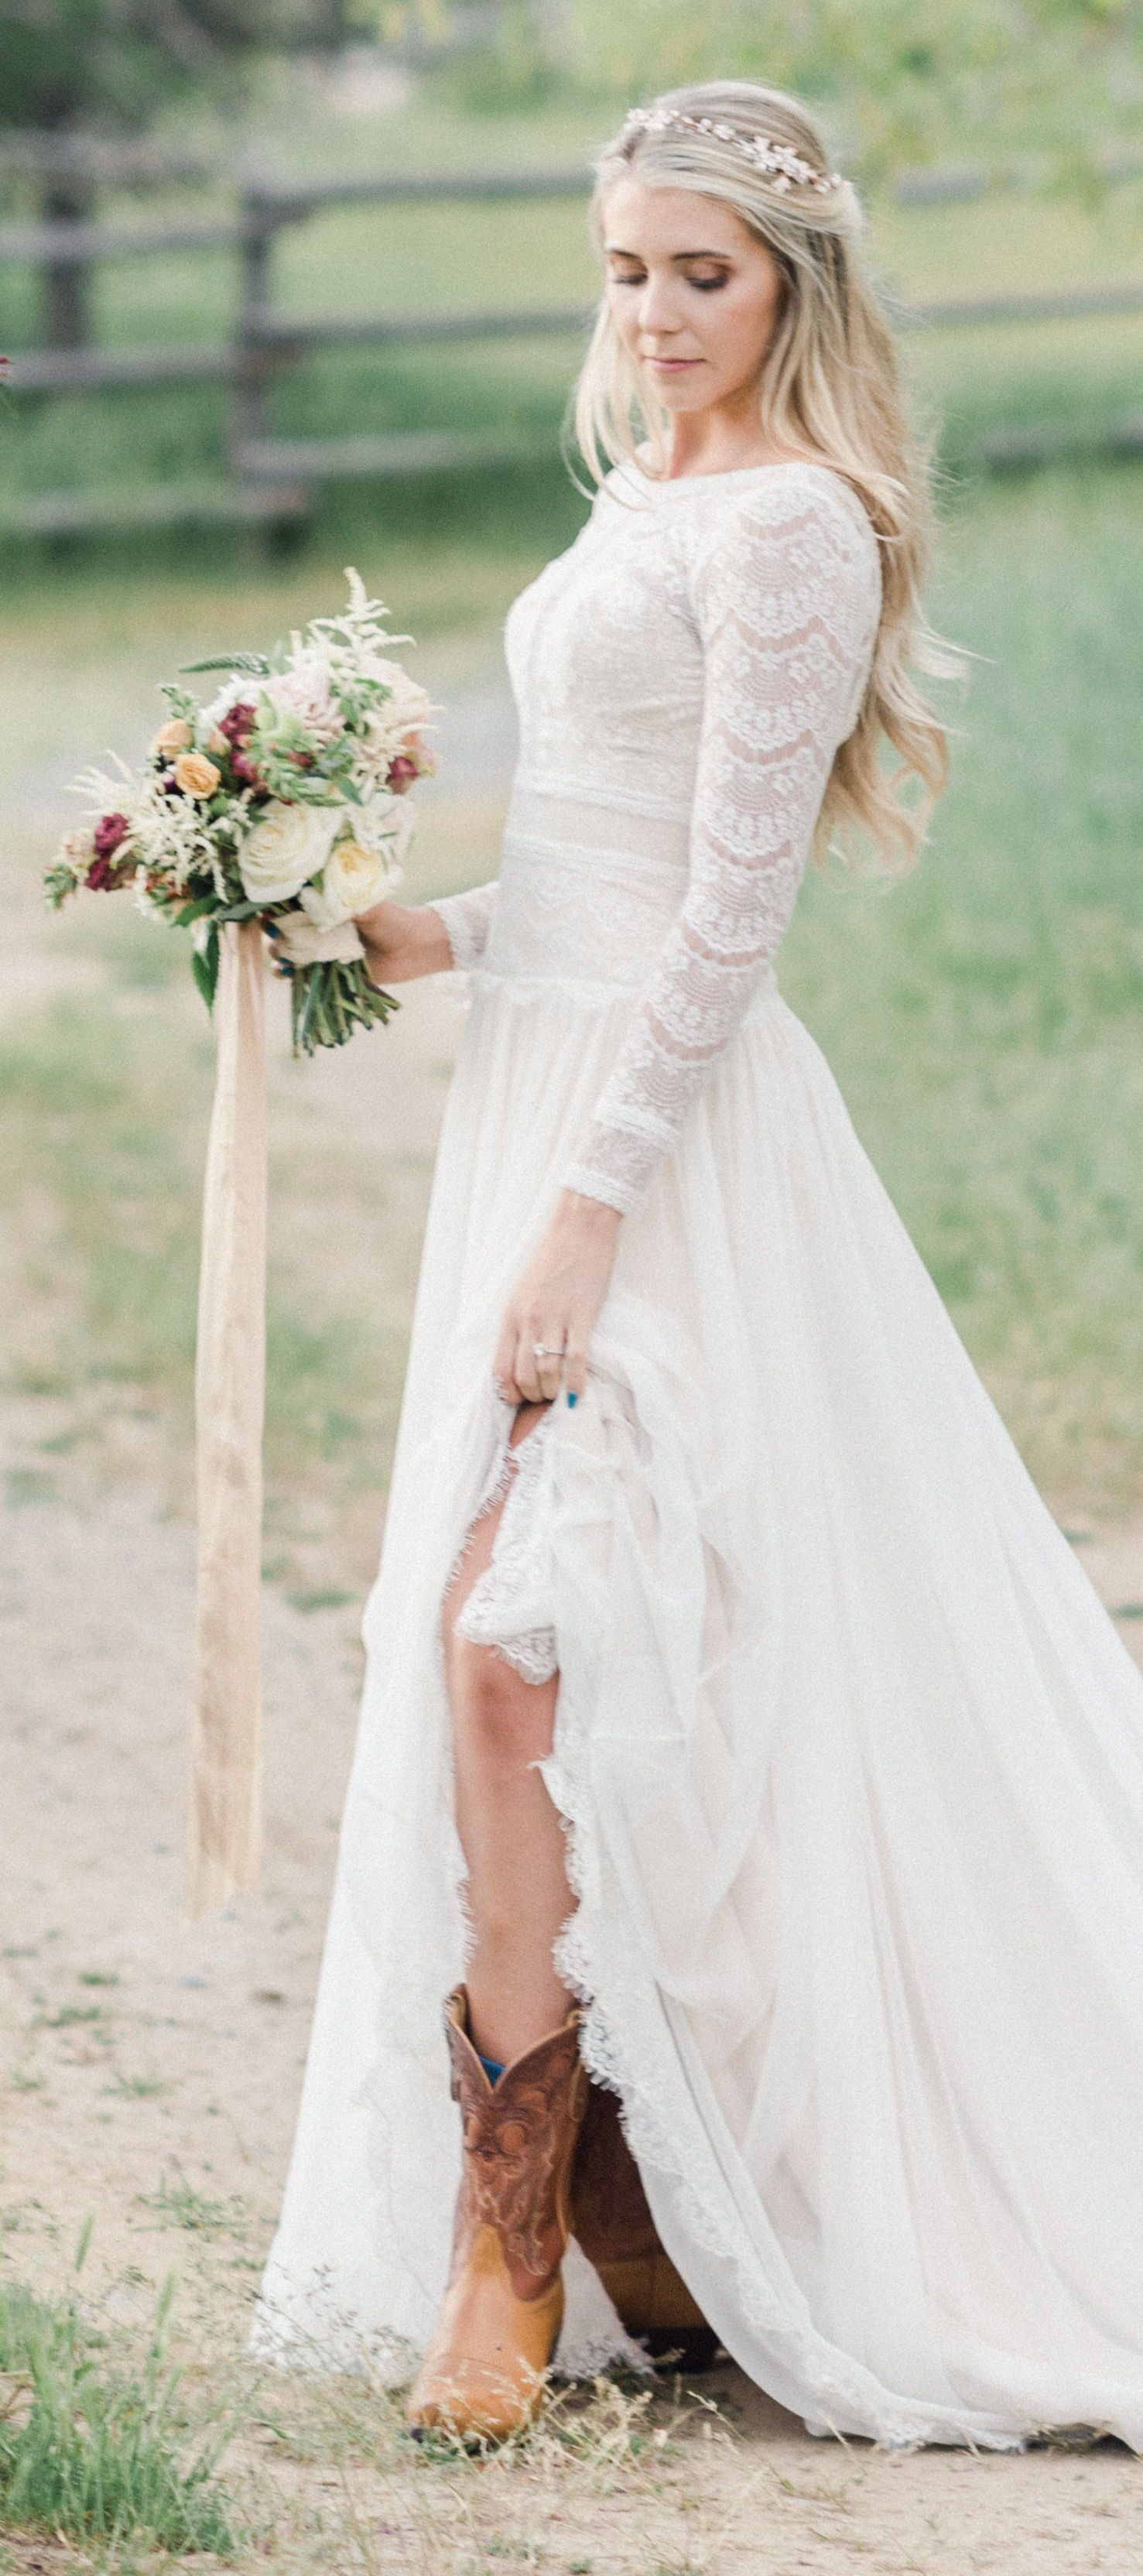 Deirdre By Maggie Sottero Wedding Dresses Rustic Wedding Dress Lace Lace Wedding Dress Country Ball Gowns Wedding